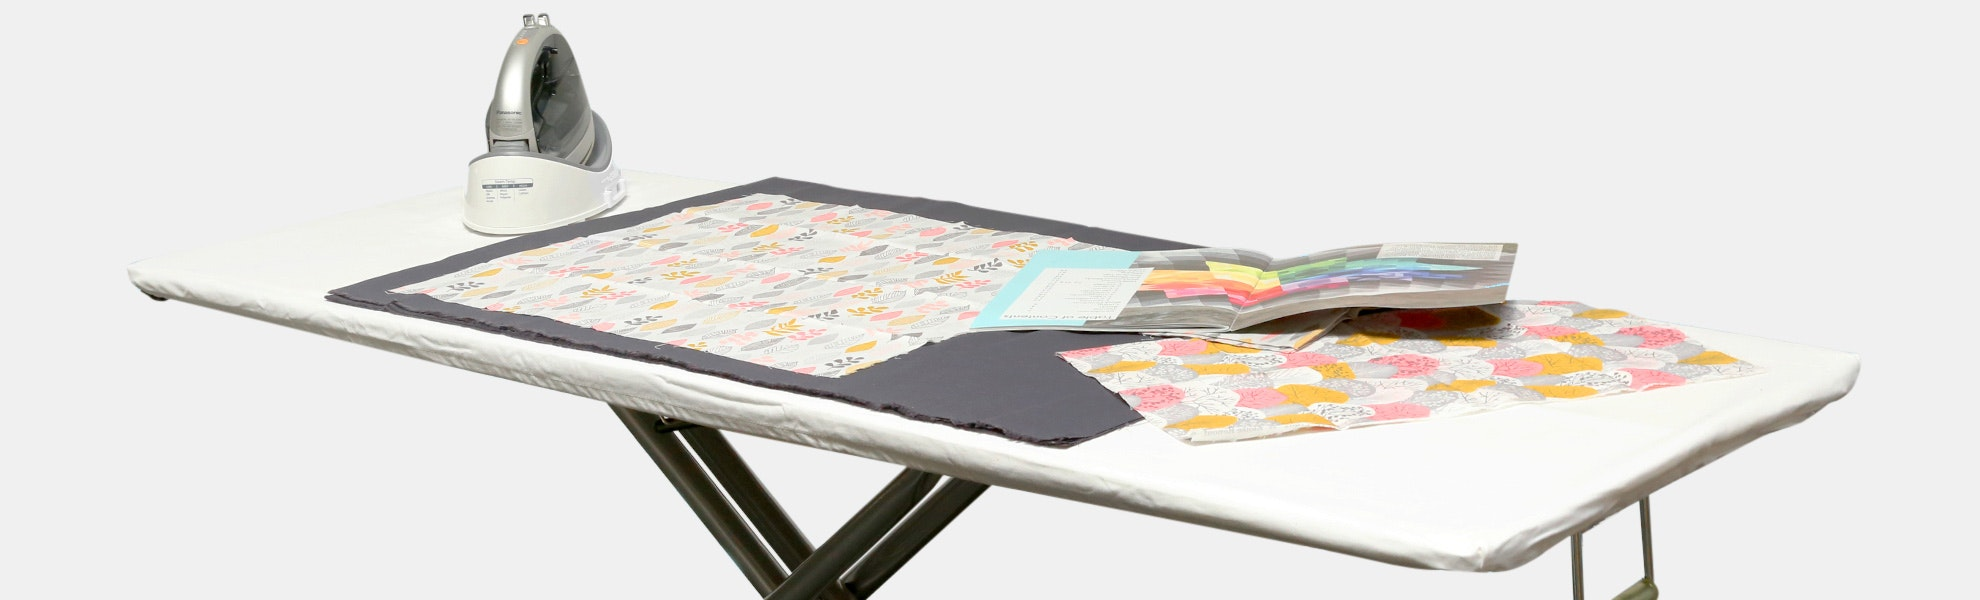 BetterBoard Ironing Board Expansion Cover